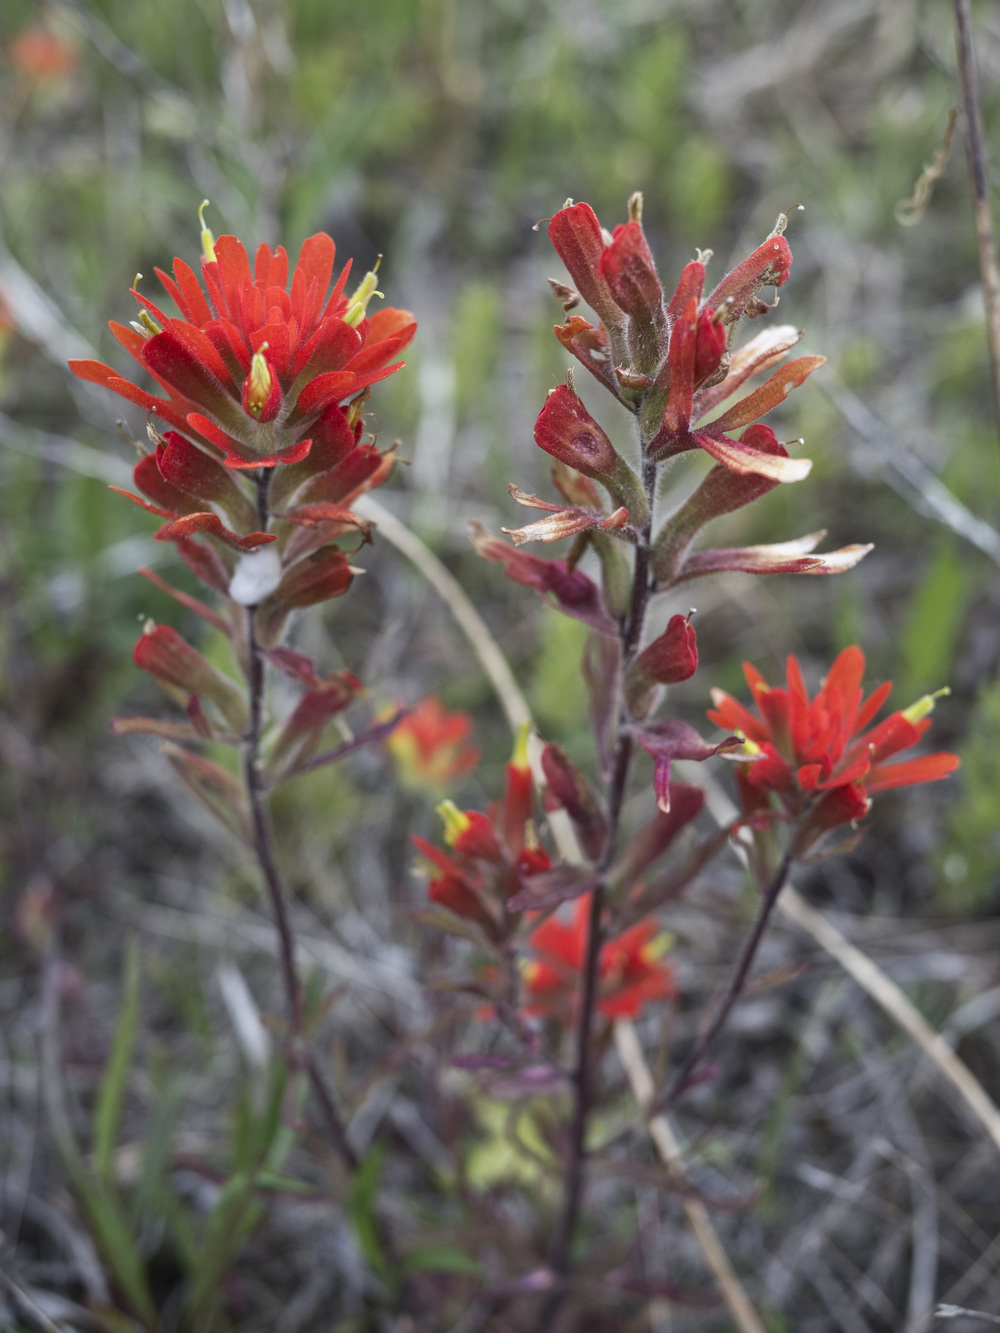 Indian Paintbrush - Castilleja coccinea (From a past foray)